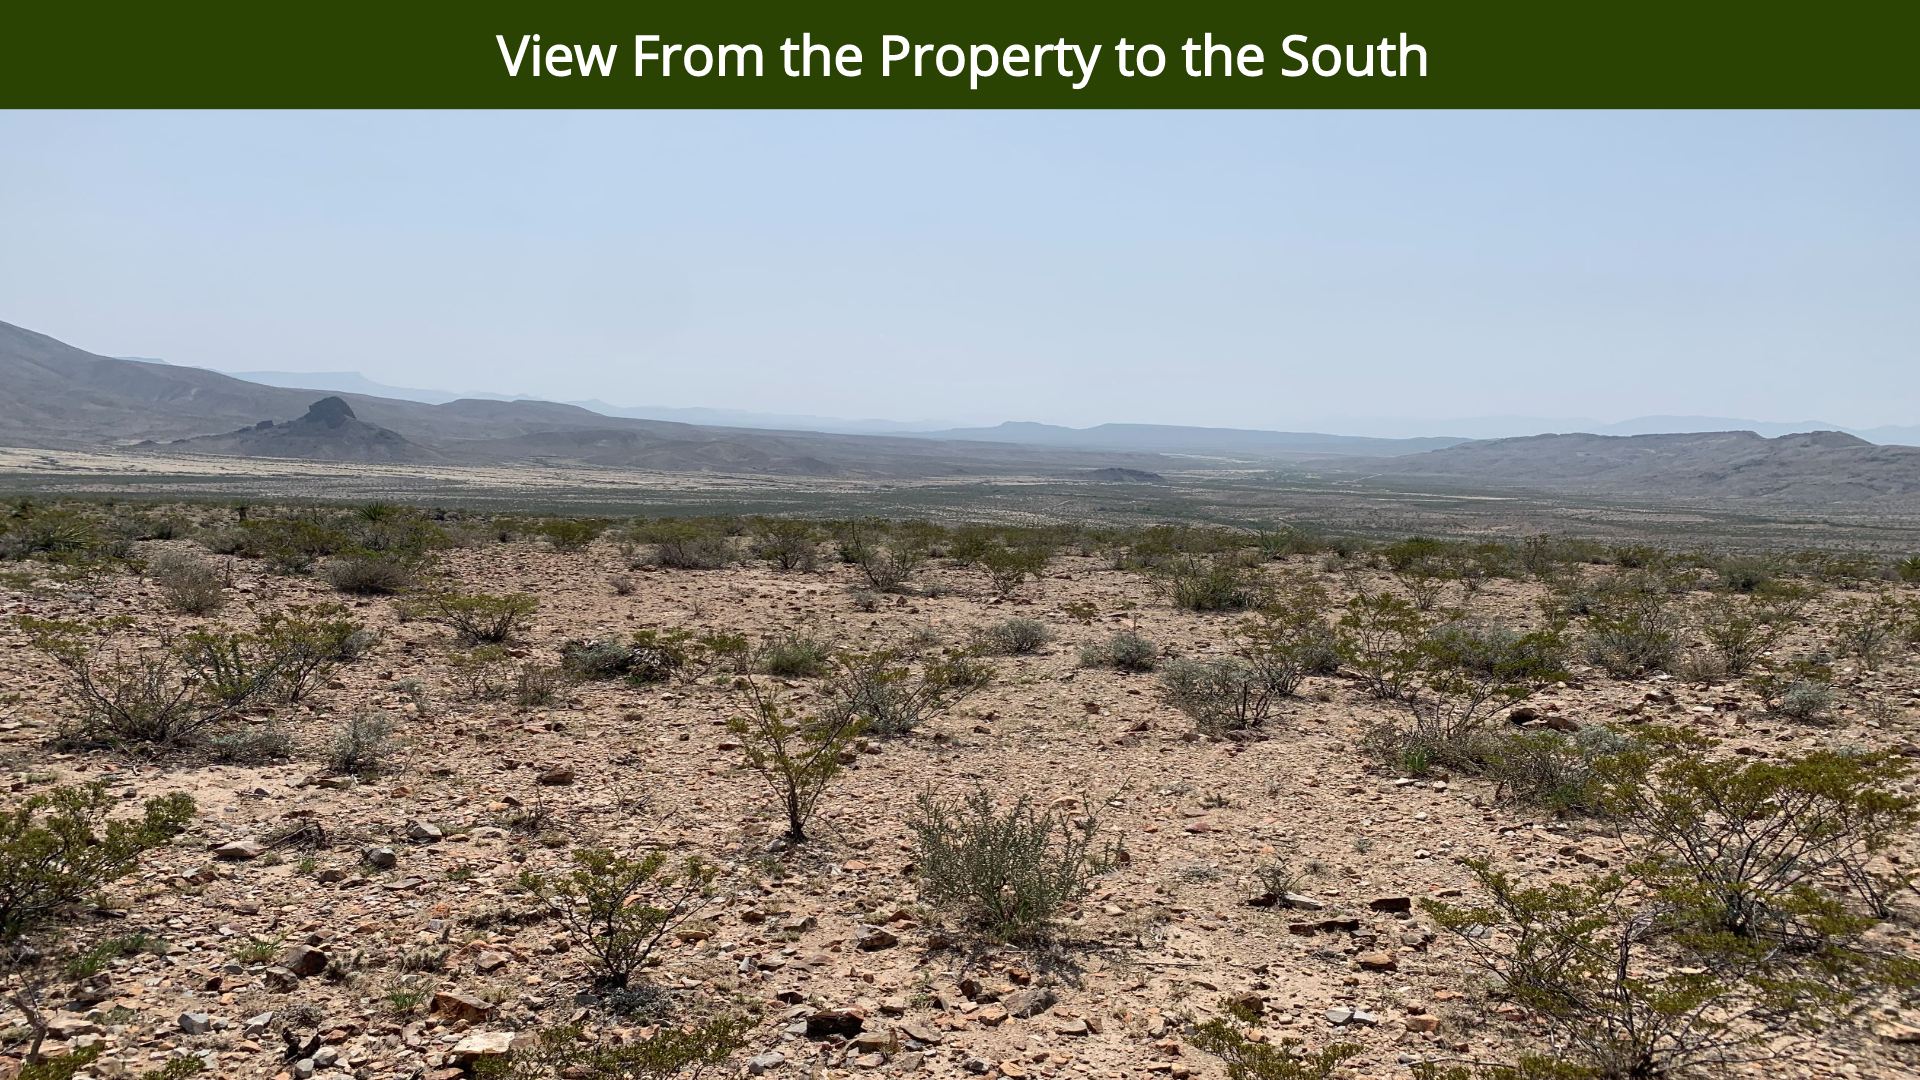 View From the Property to the South